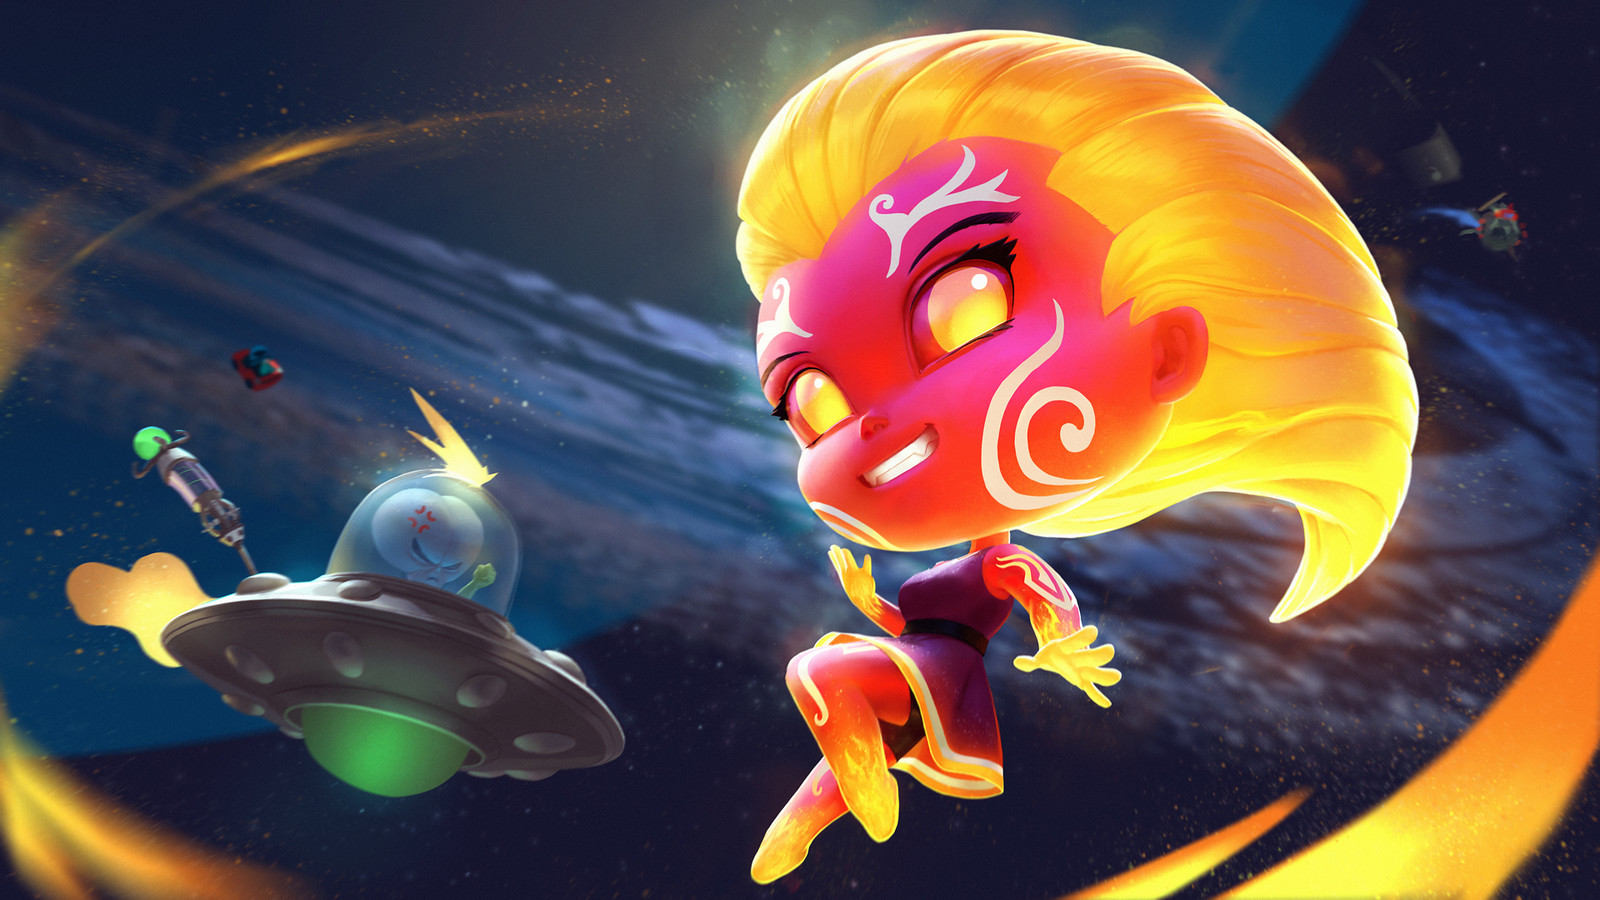 Steamy Chibi Sol Splash